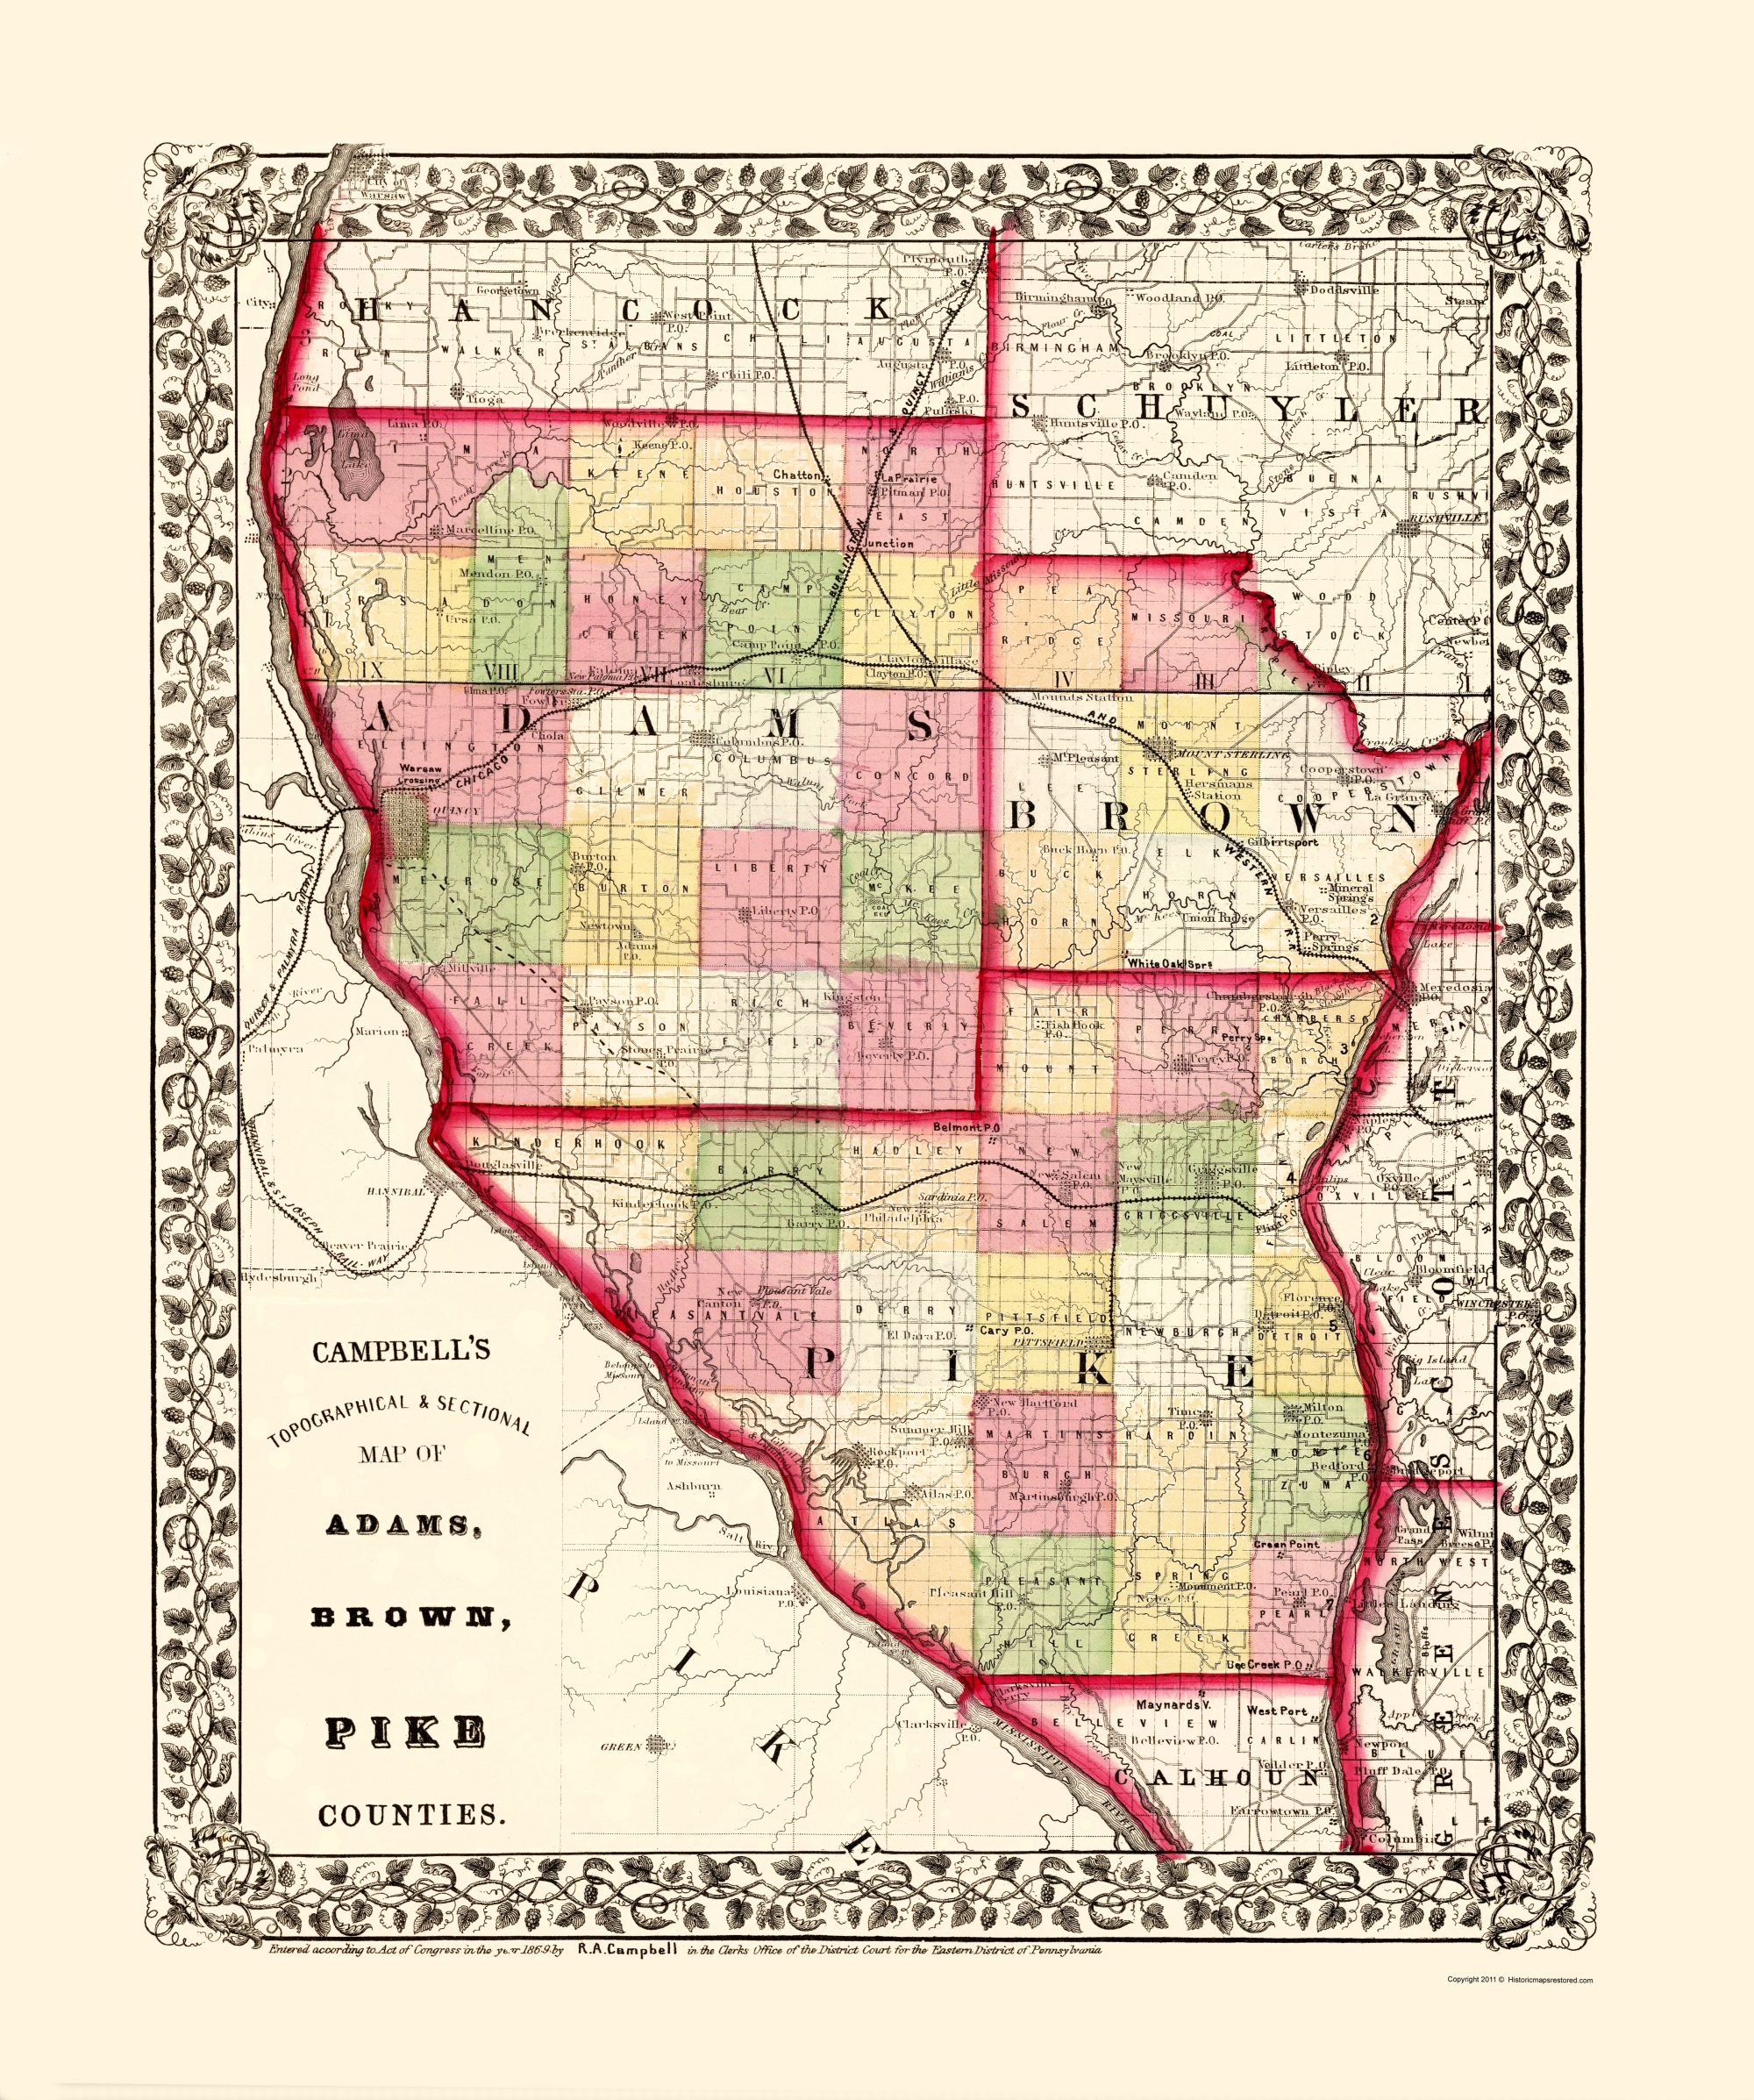 Old County Map Adams Brown Pike Illinois 1850